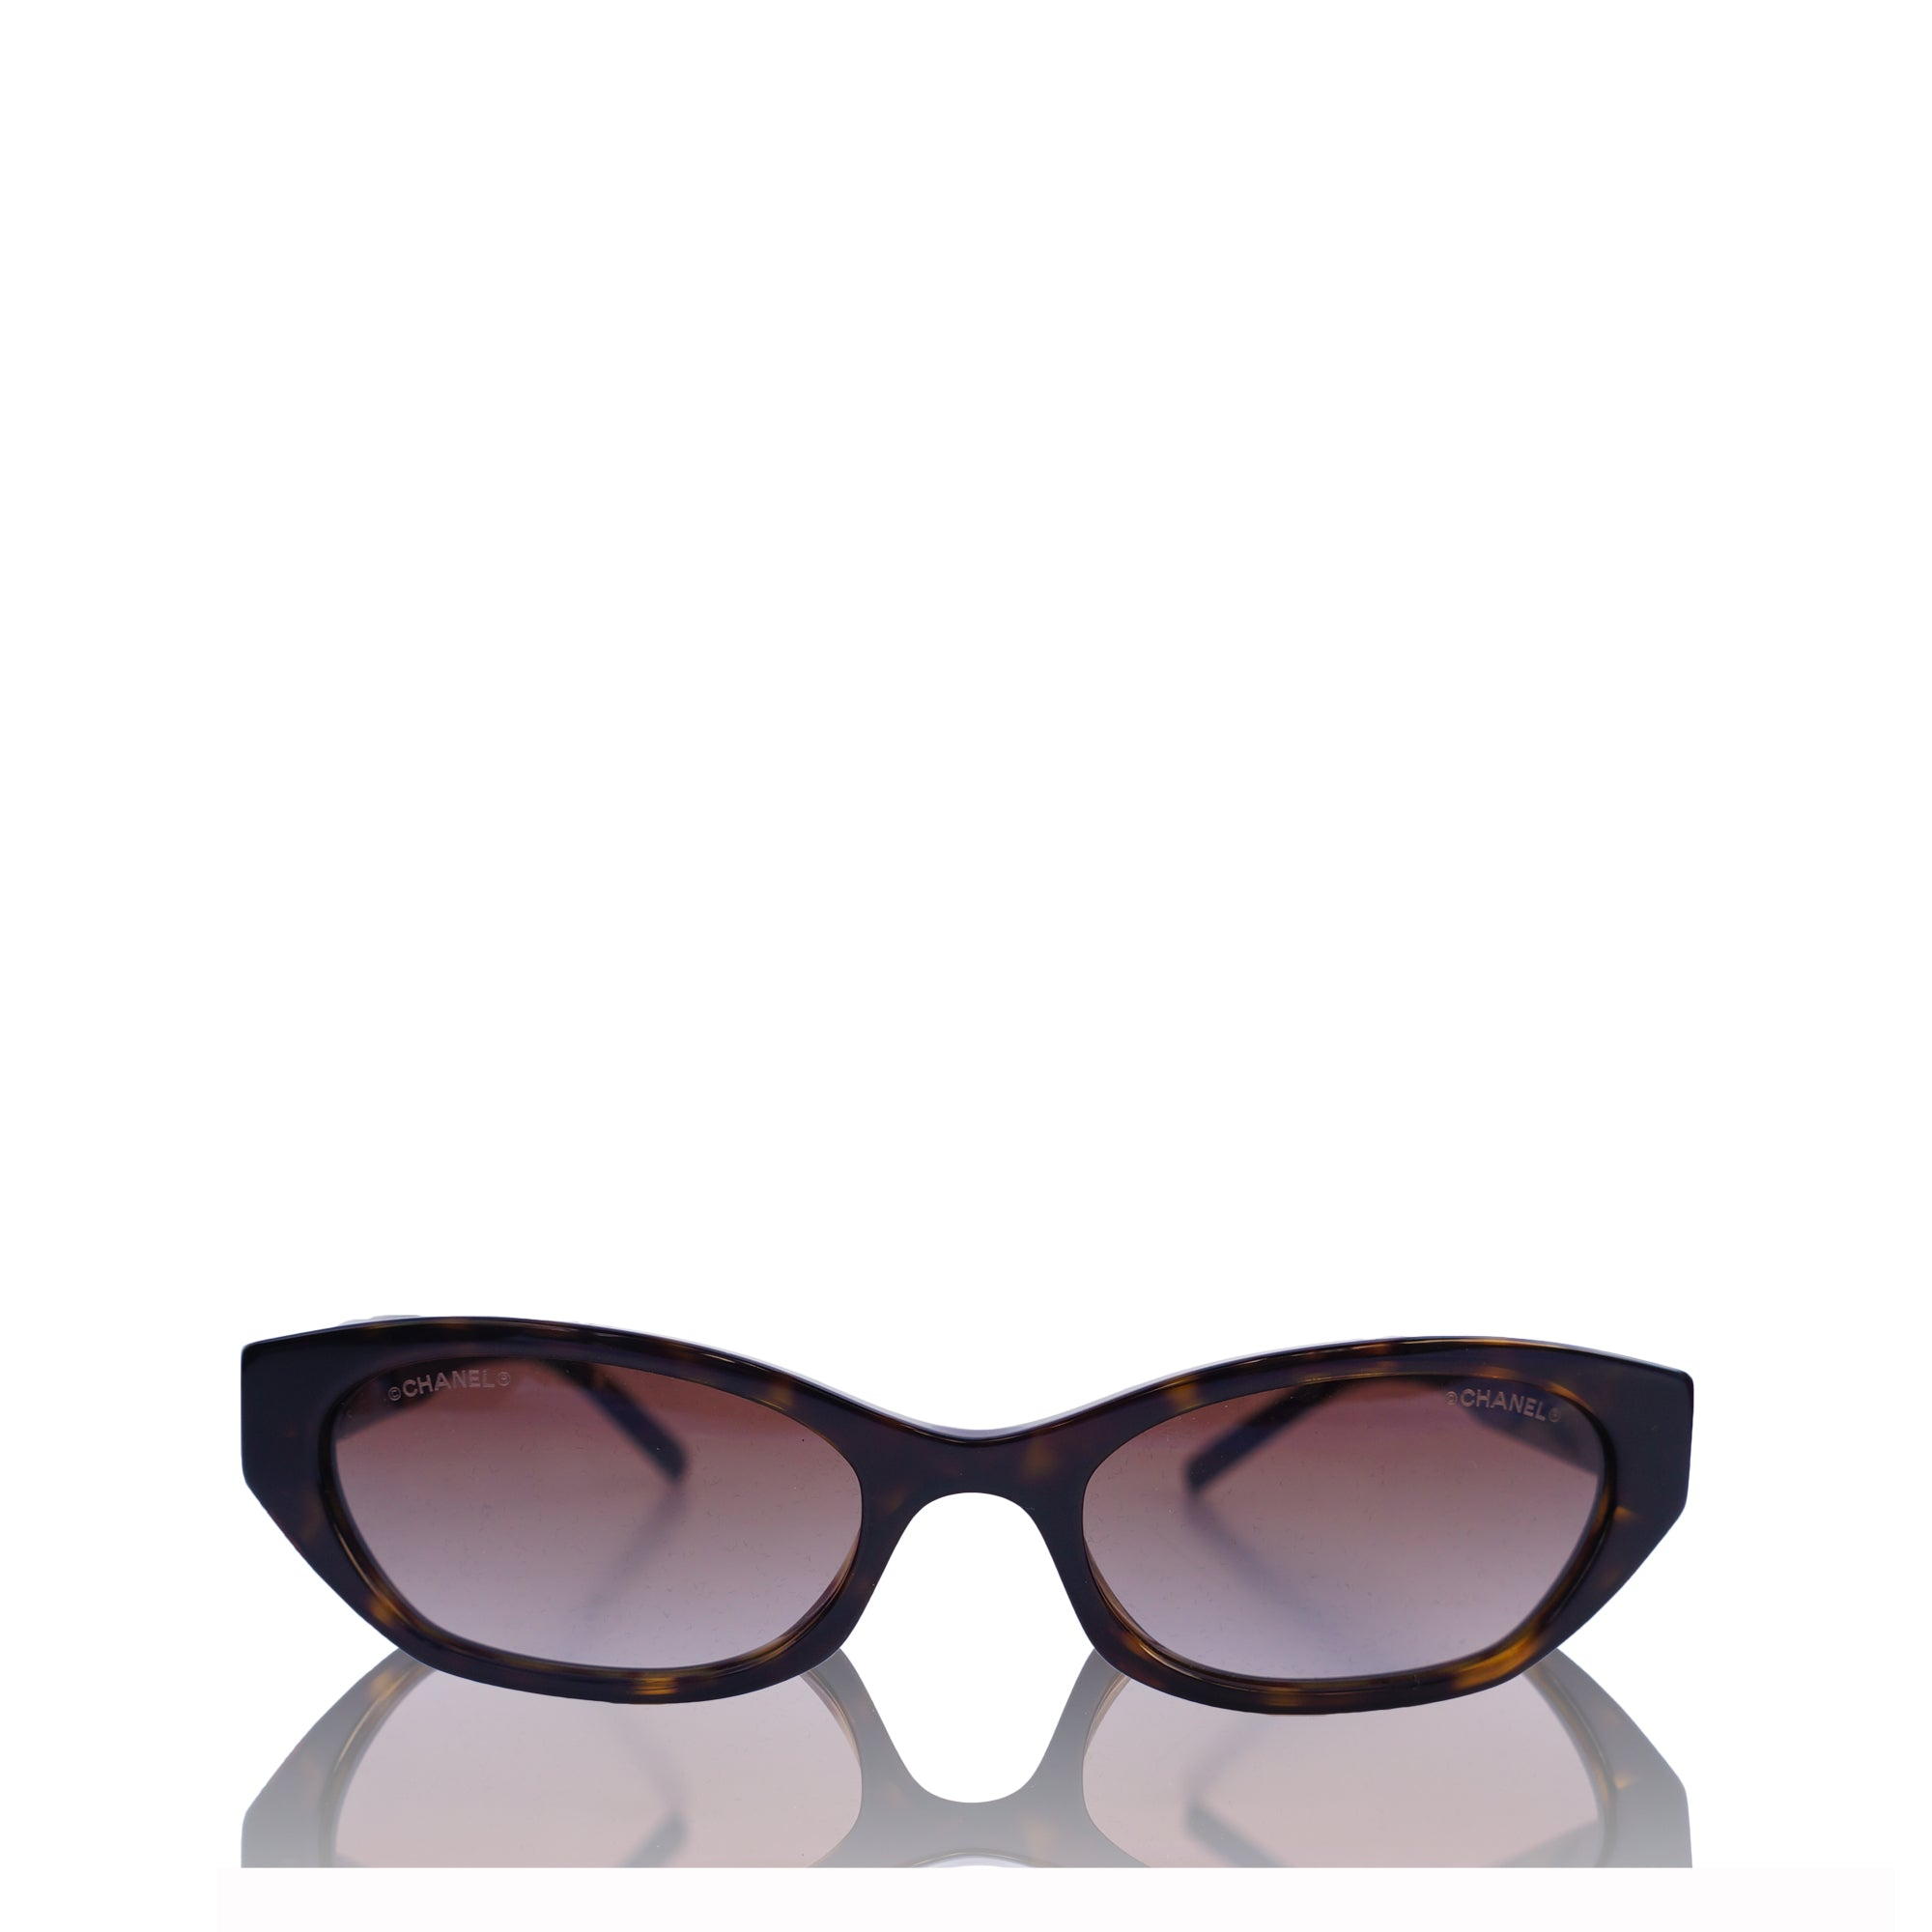 679f298d92 FALL WINTER 2018 2019 18K CHANEL SUNGLASSES Shop online the best value on  authentic ...